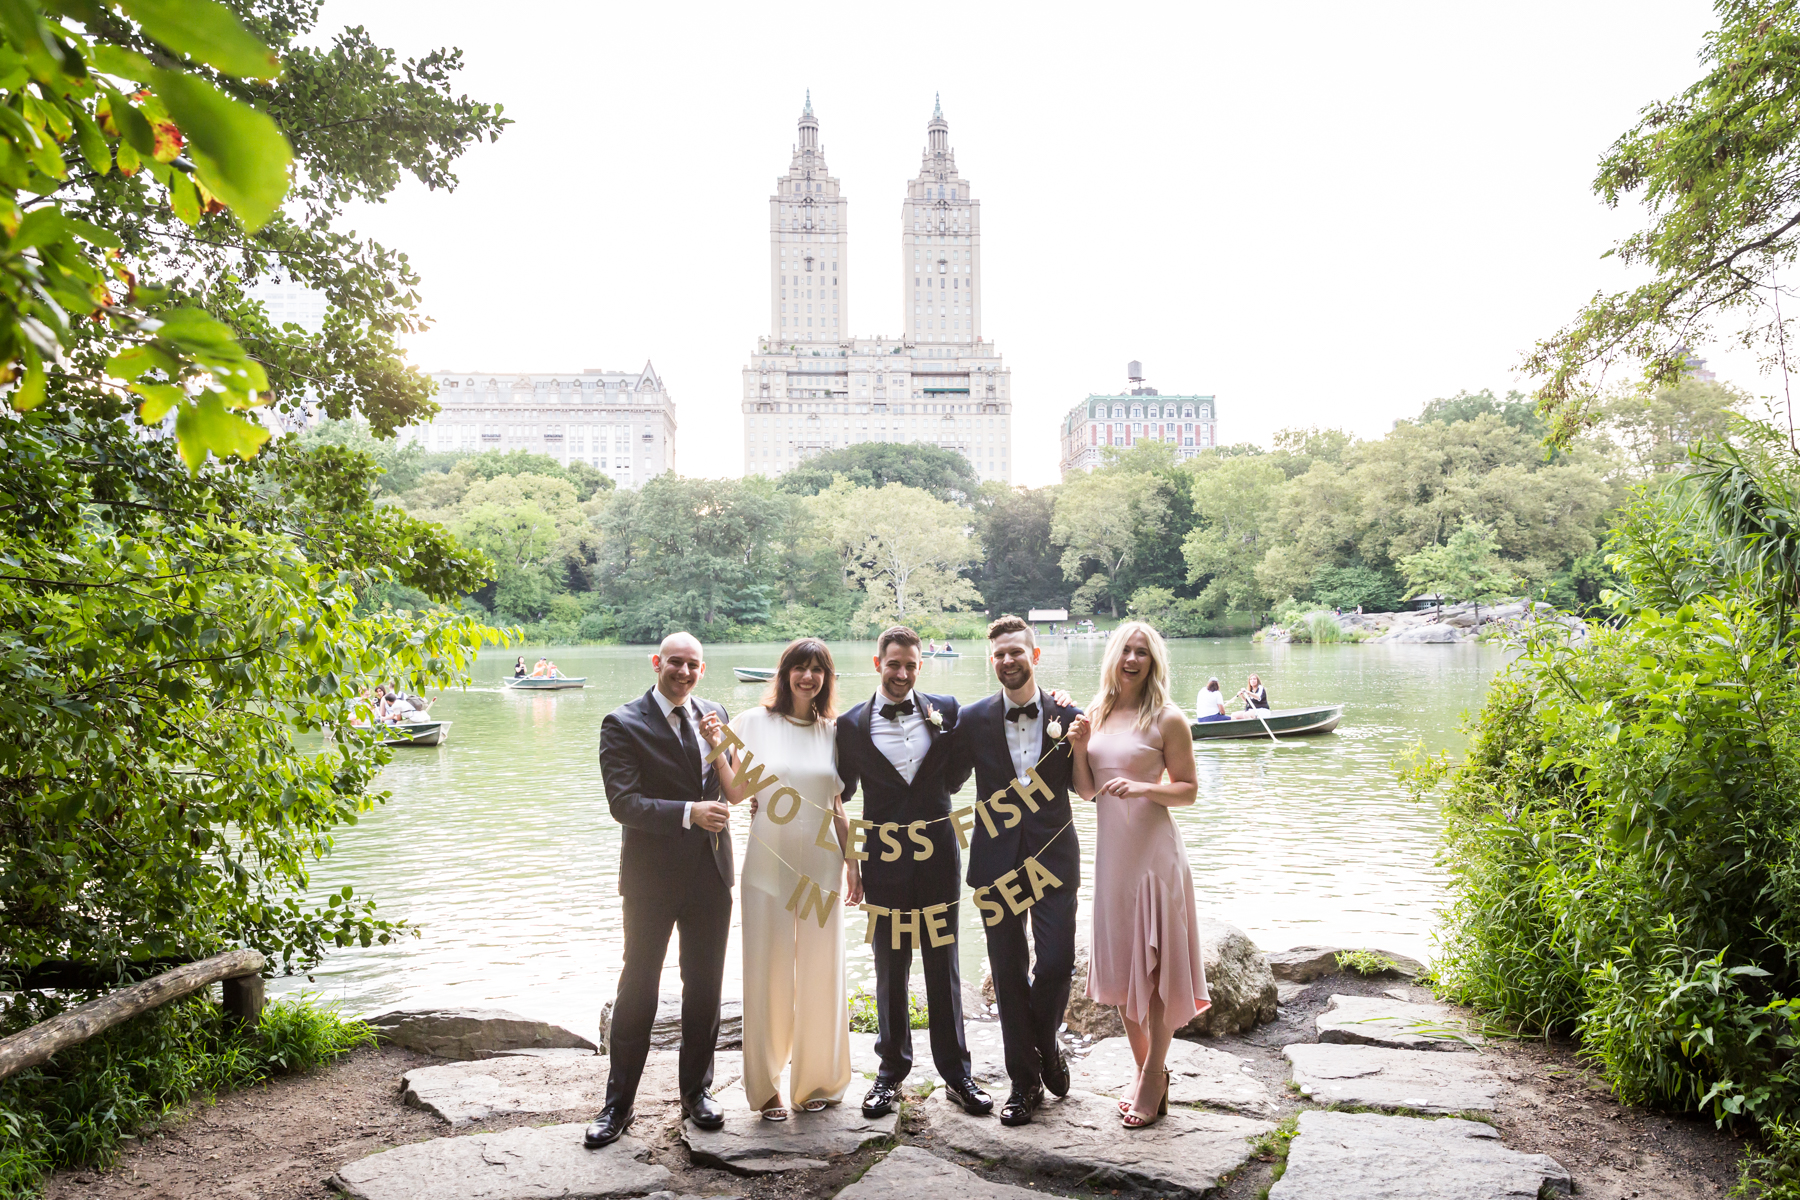 Wedding party portrait for an article entitled, 'Do you need a permit to get married in Central Park?'